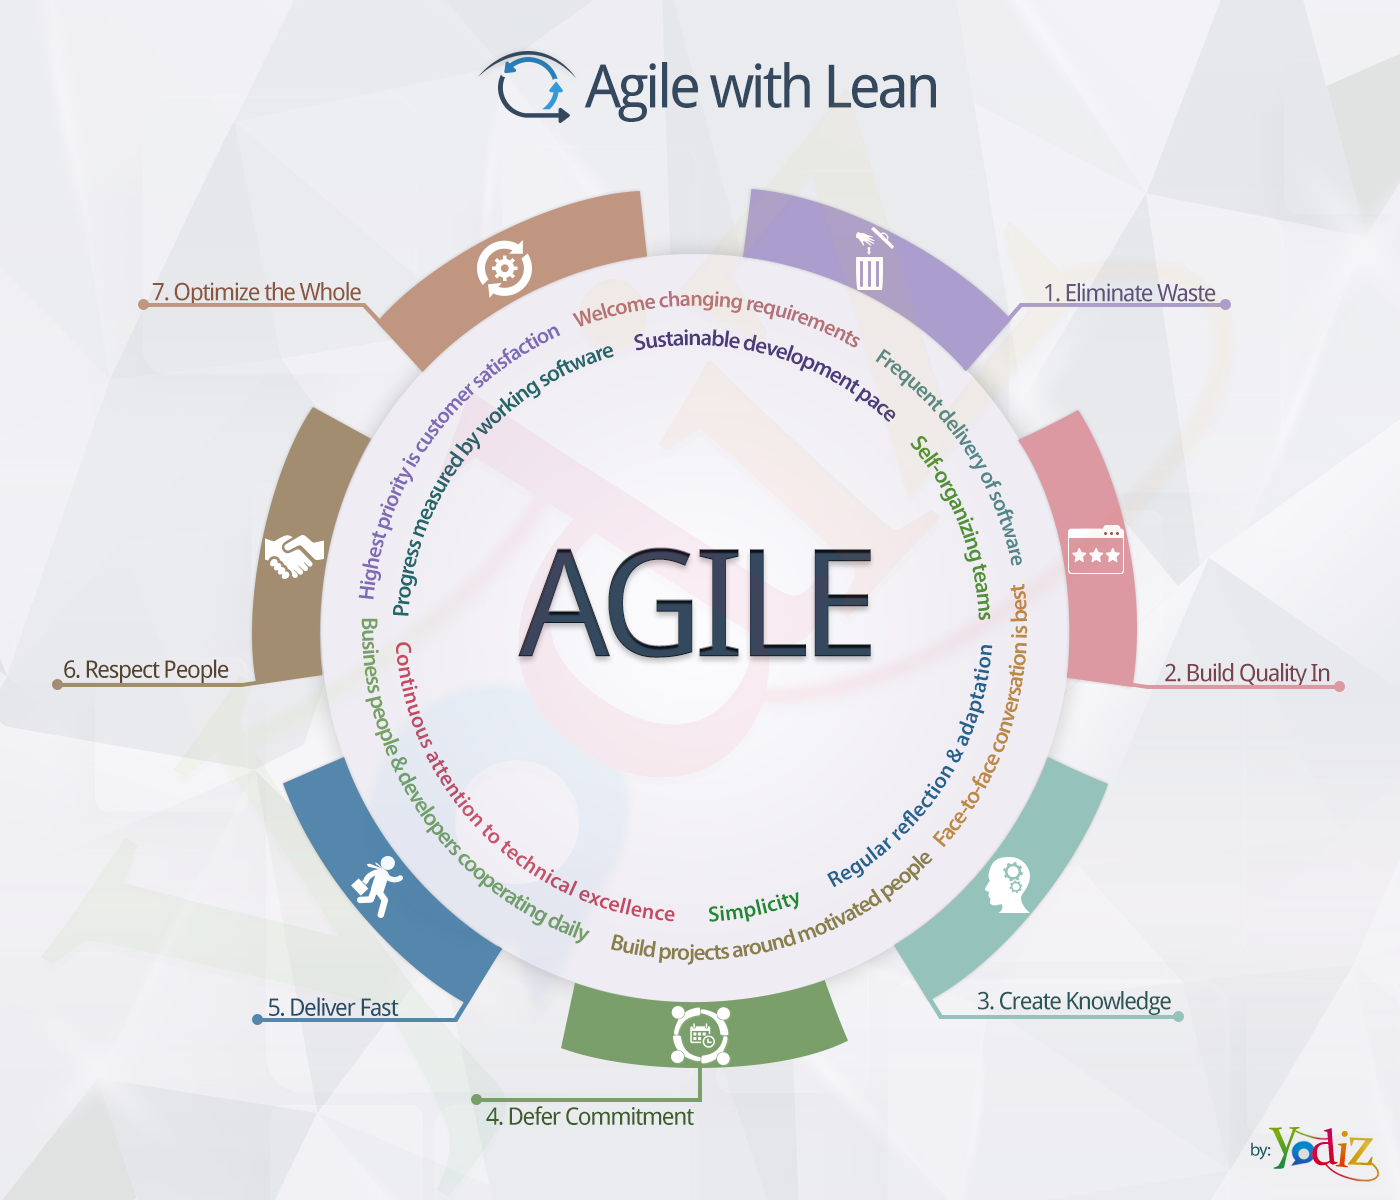 Yodiz - Agile And Lean